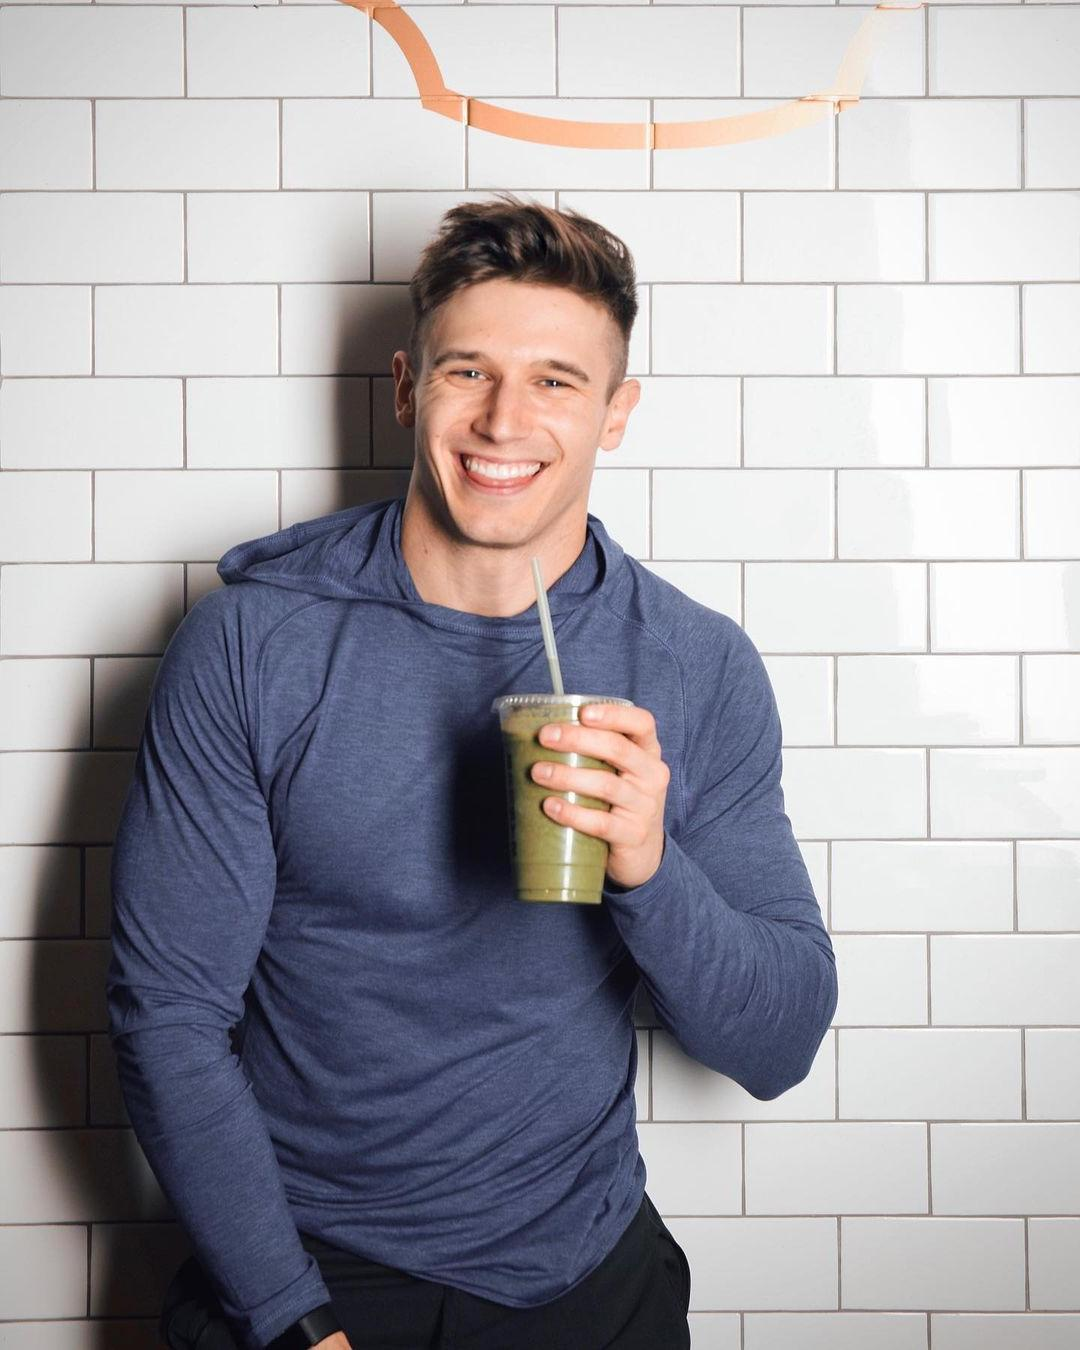 cute-fit-gay-guy-smiling-drinking-green-smoothie